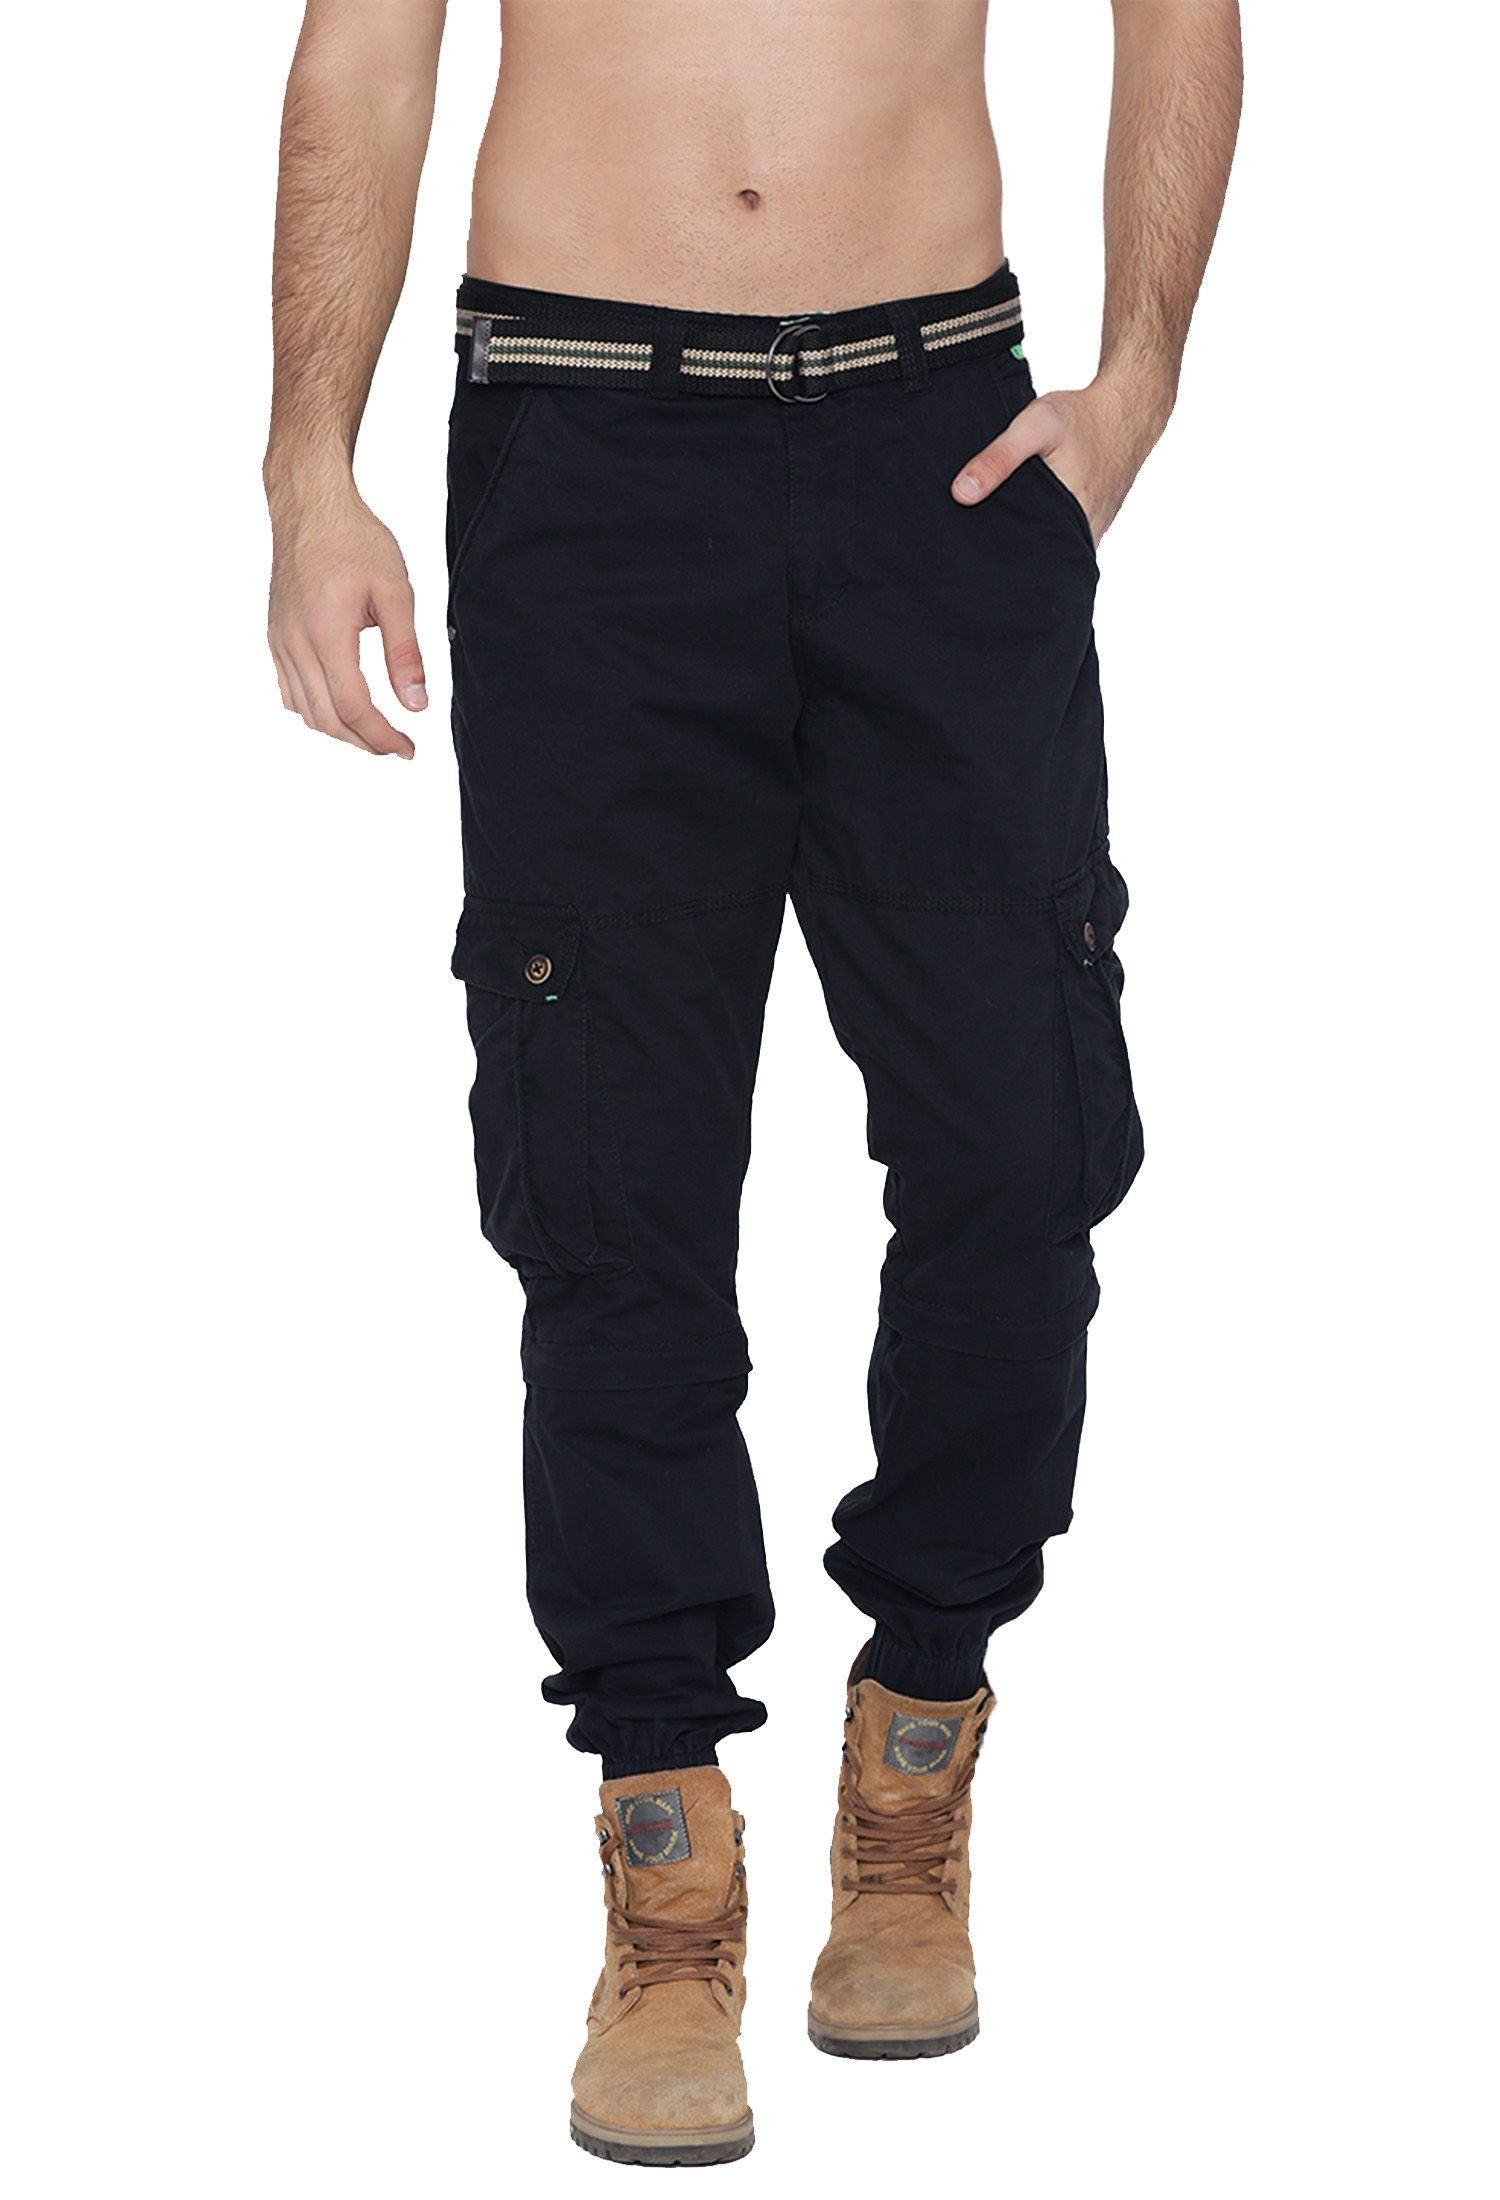 FIFTY TWO Black Regular -Fit Flat Joggers